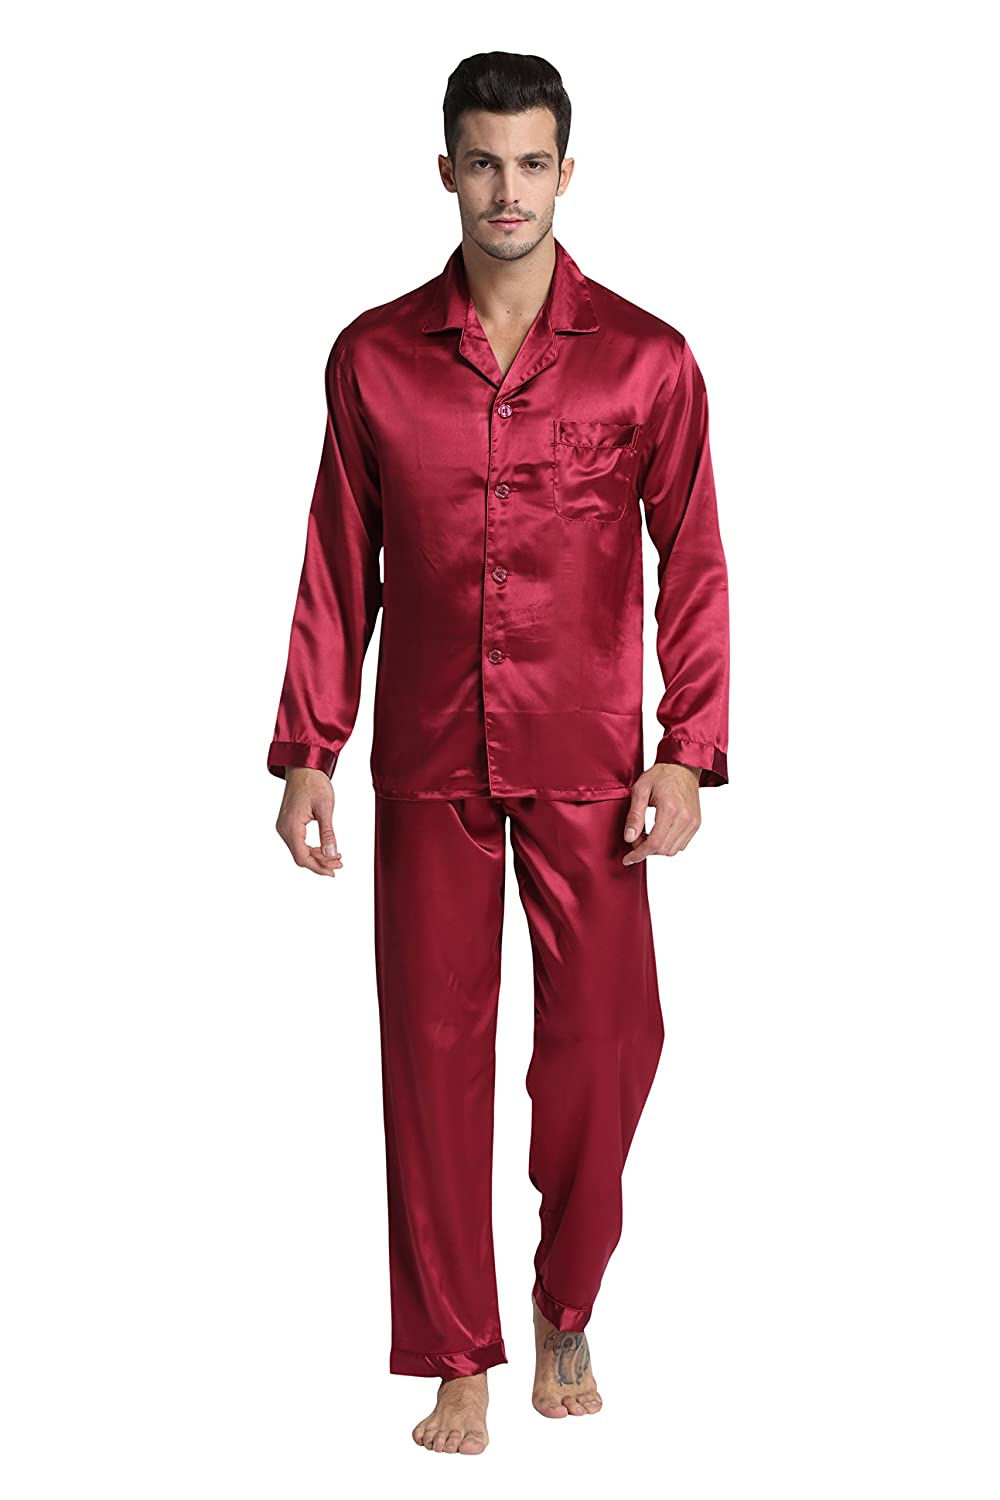 TONY AND CANDICE Men's Sleepwear Classic Satin Pyjama Set, Nightwear